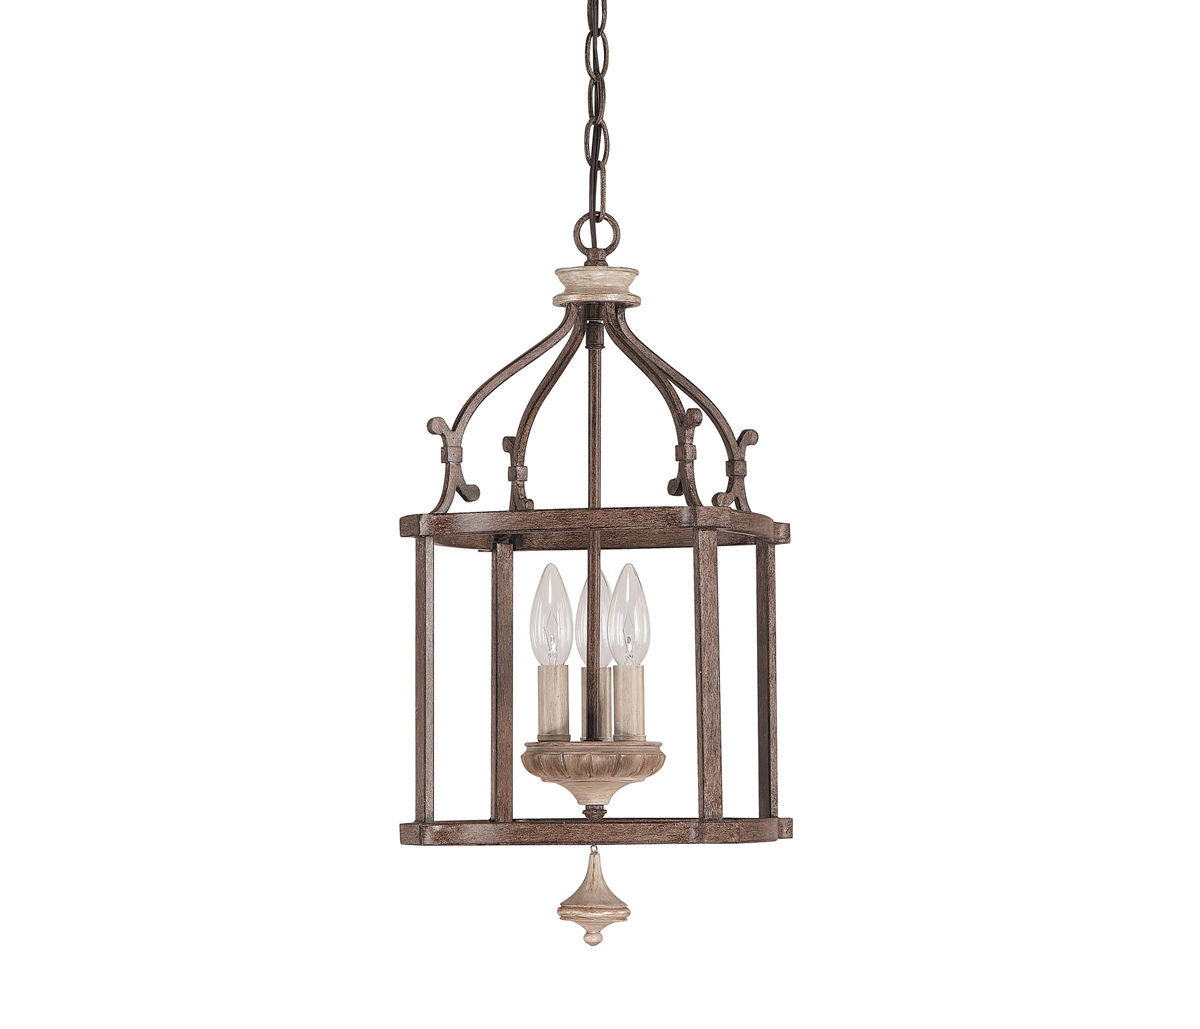 Foyer Lighting Lantern : Capital lighting chateau light foyer fixture